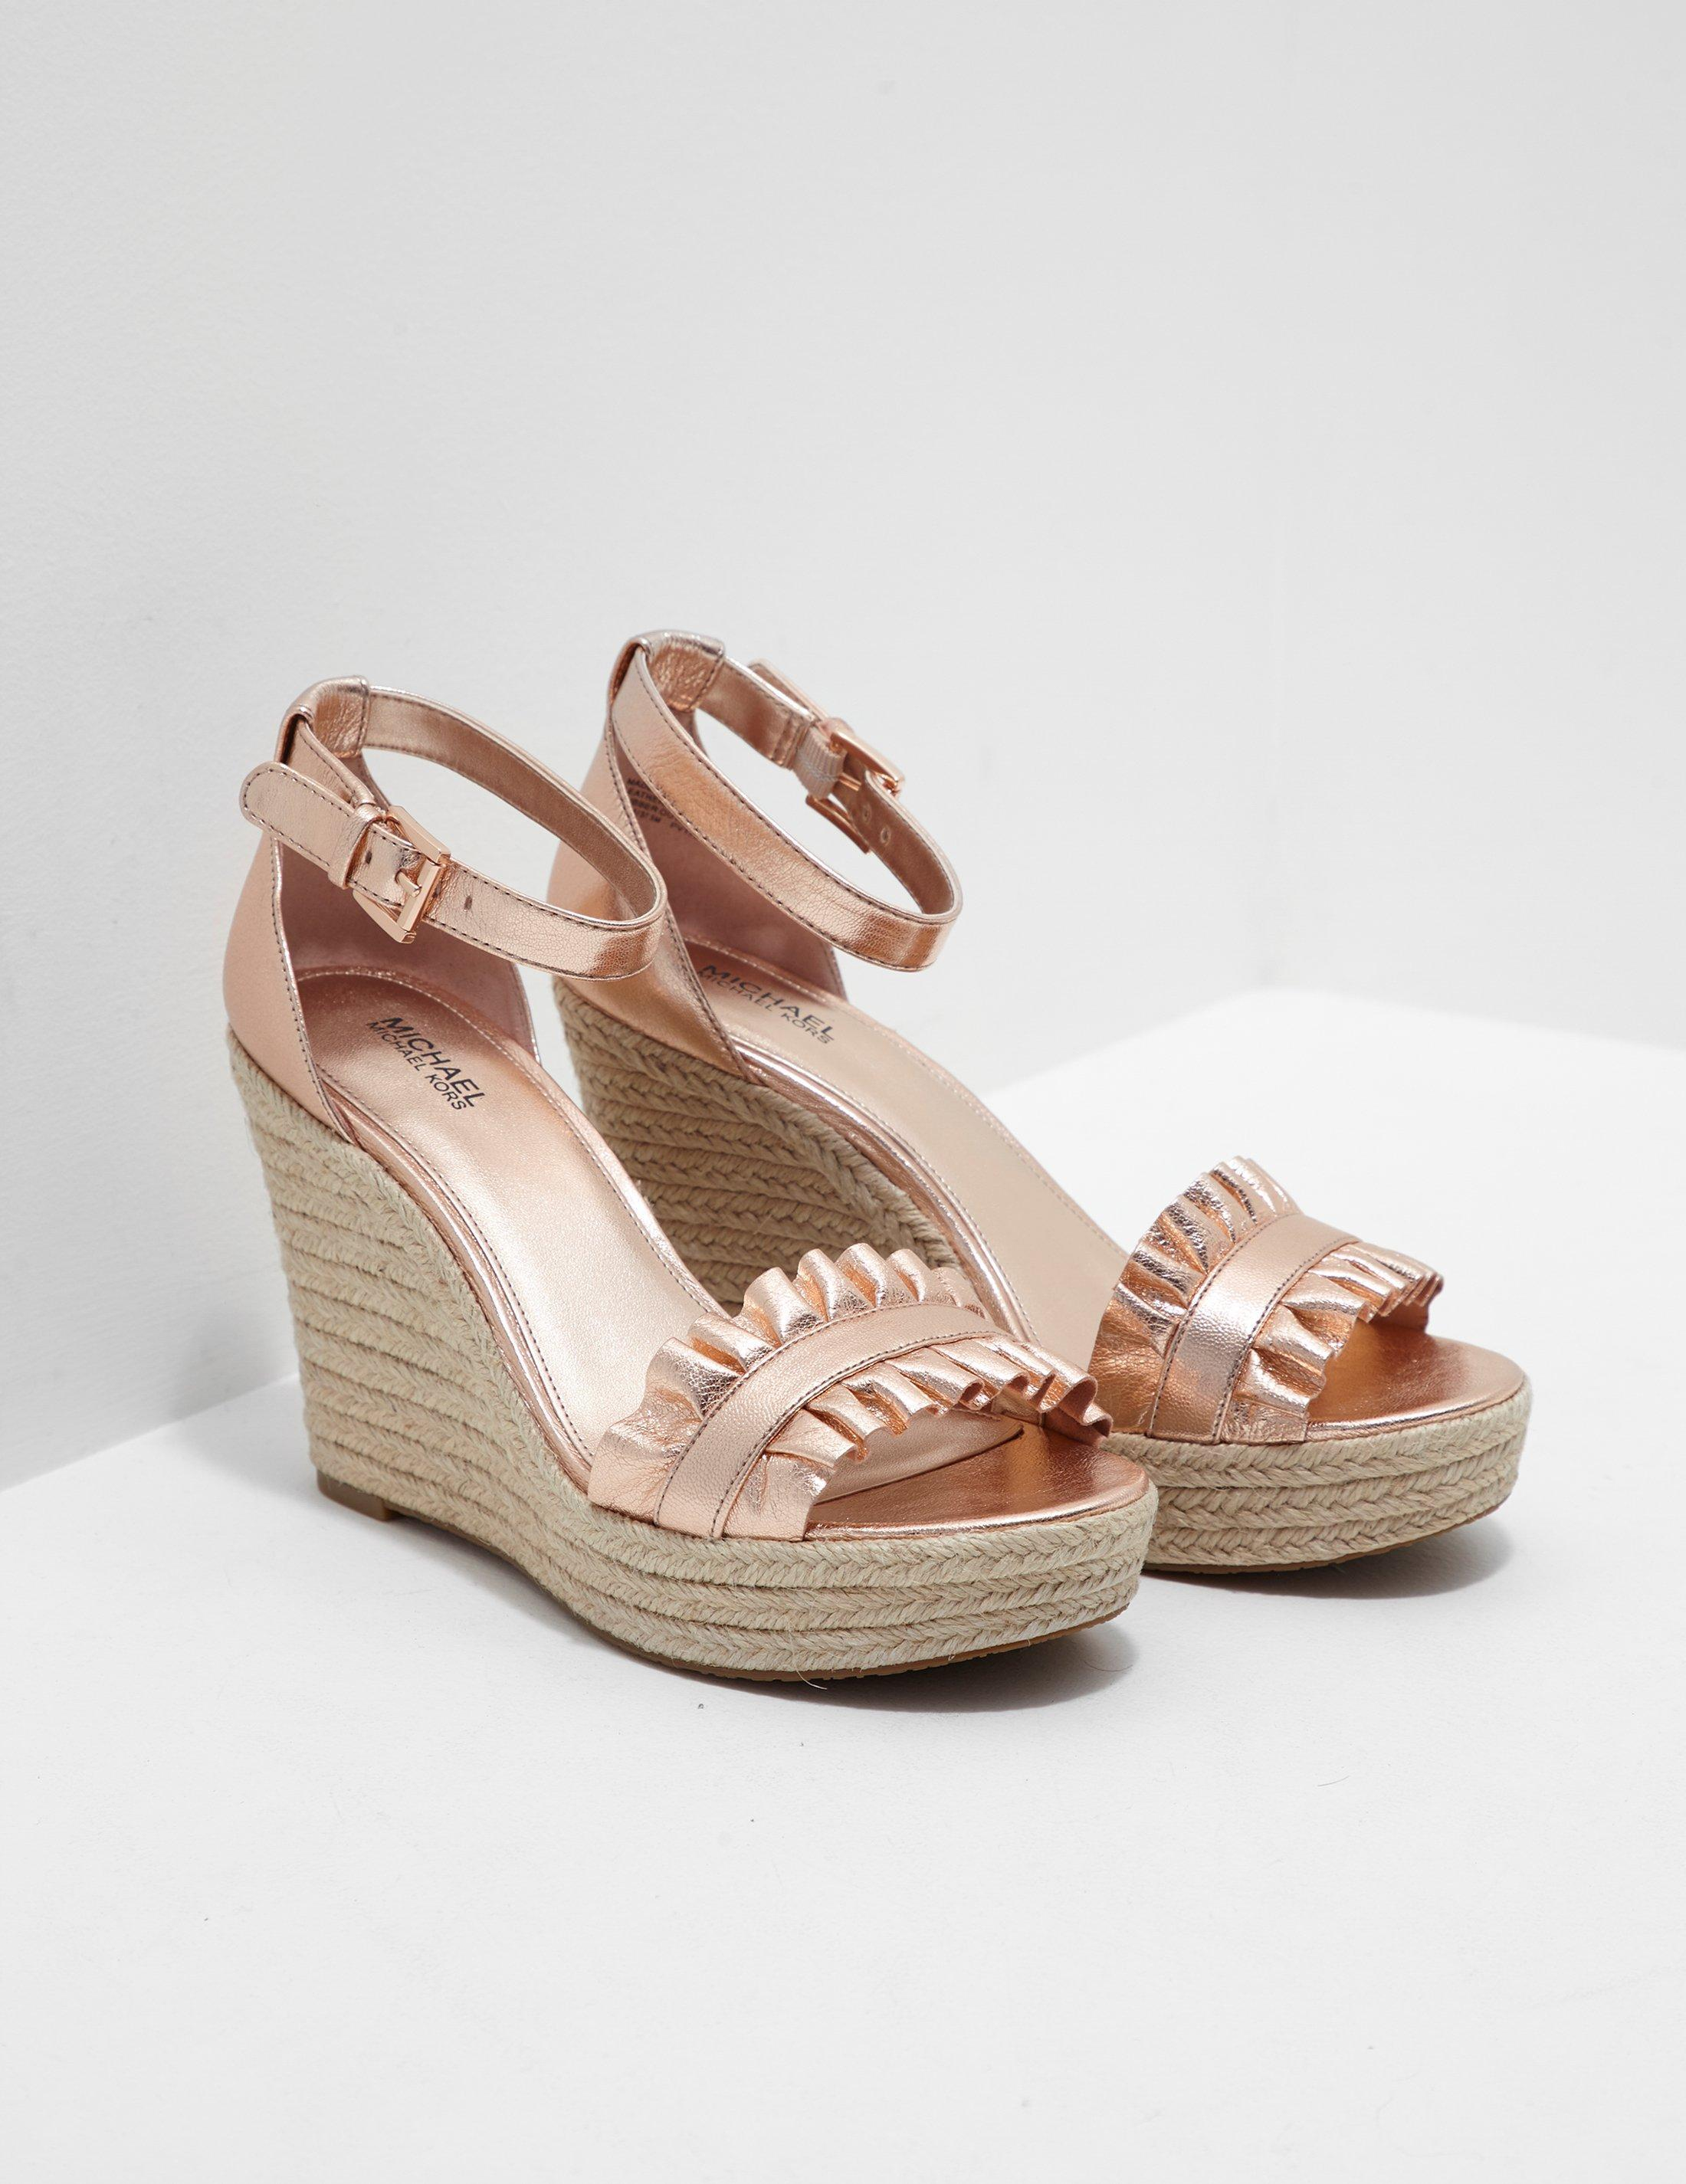 26aade1e9284 Lyst - Michael Kors Bella Wedges Gold in Metallic - Save 17%